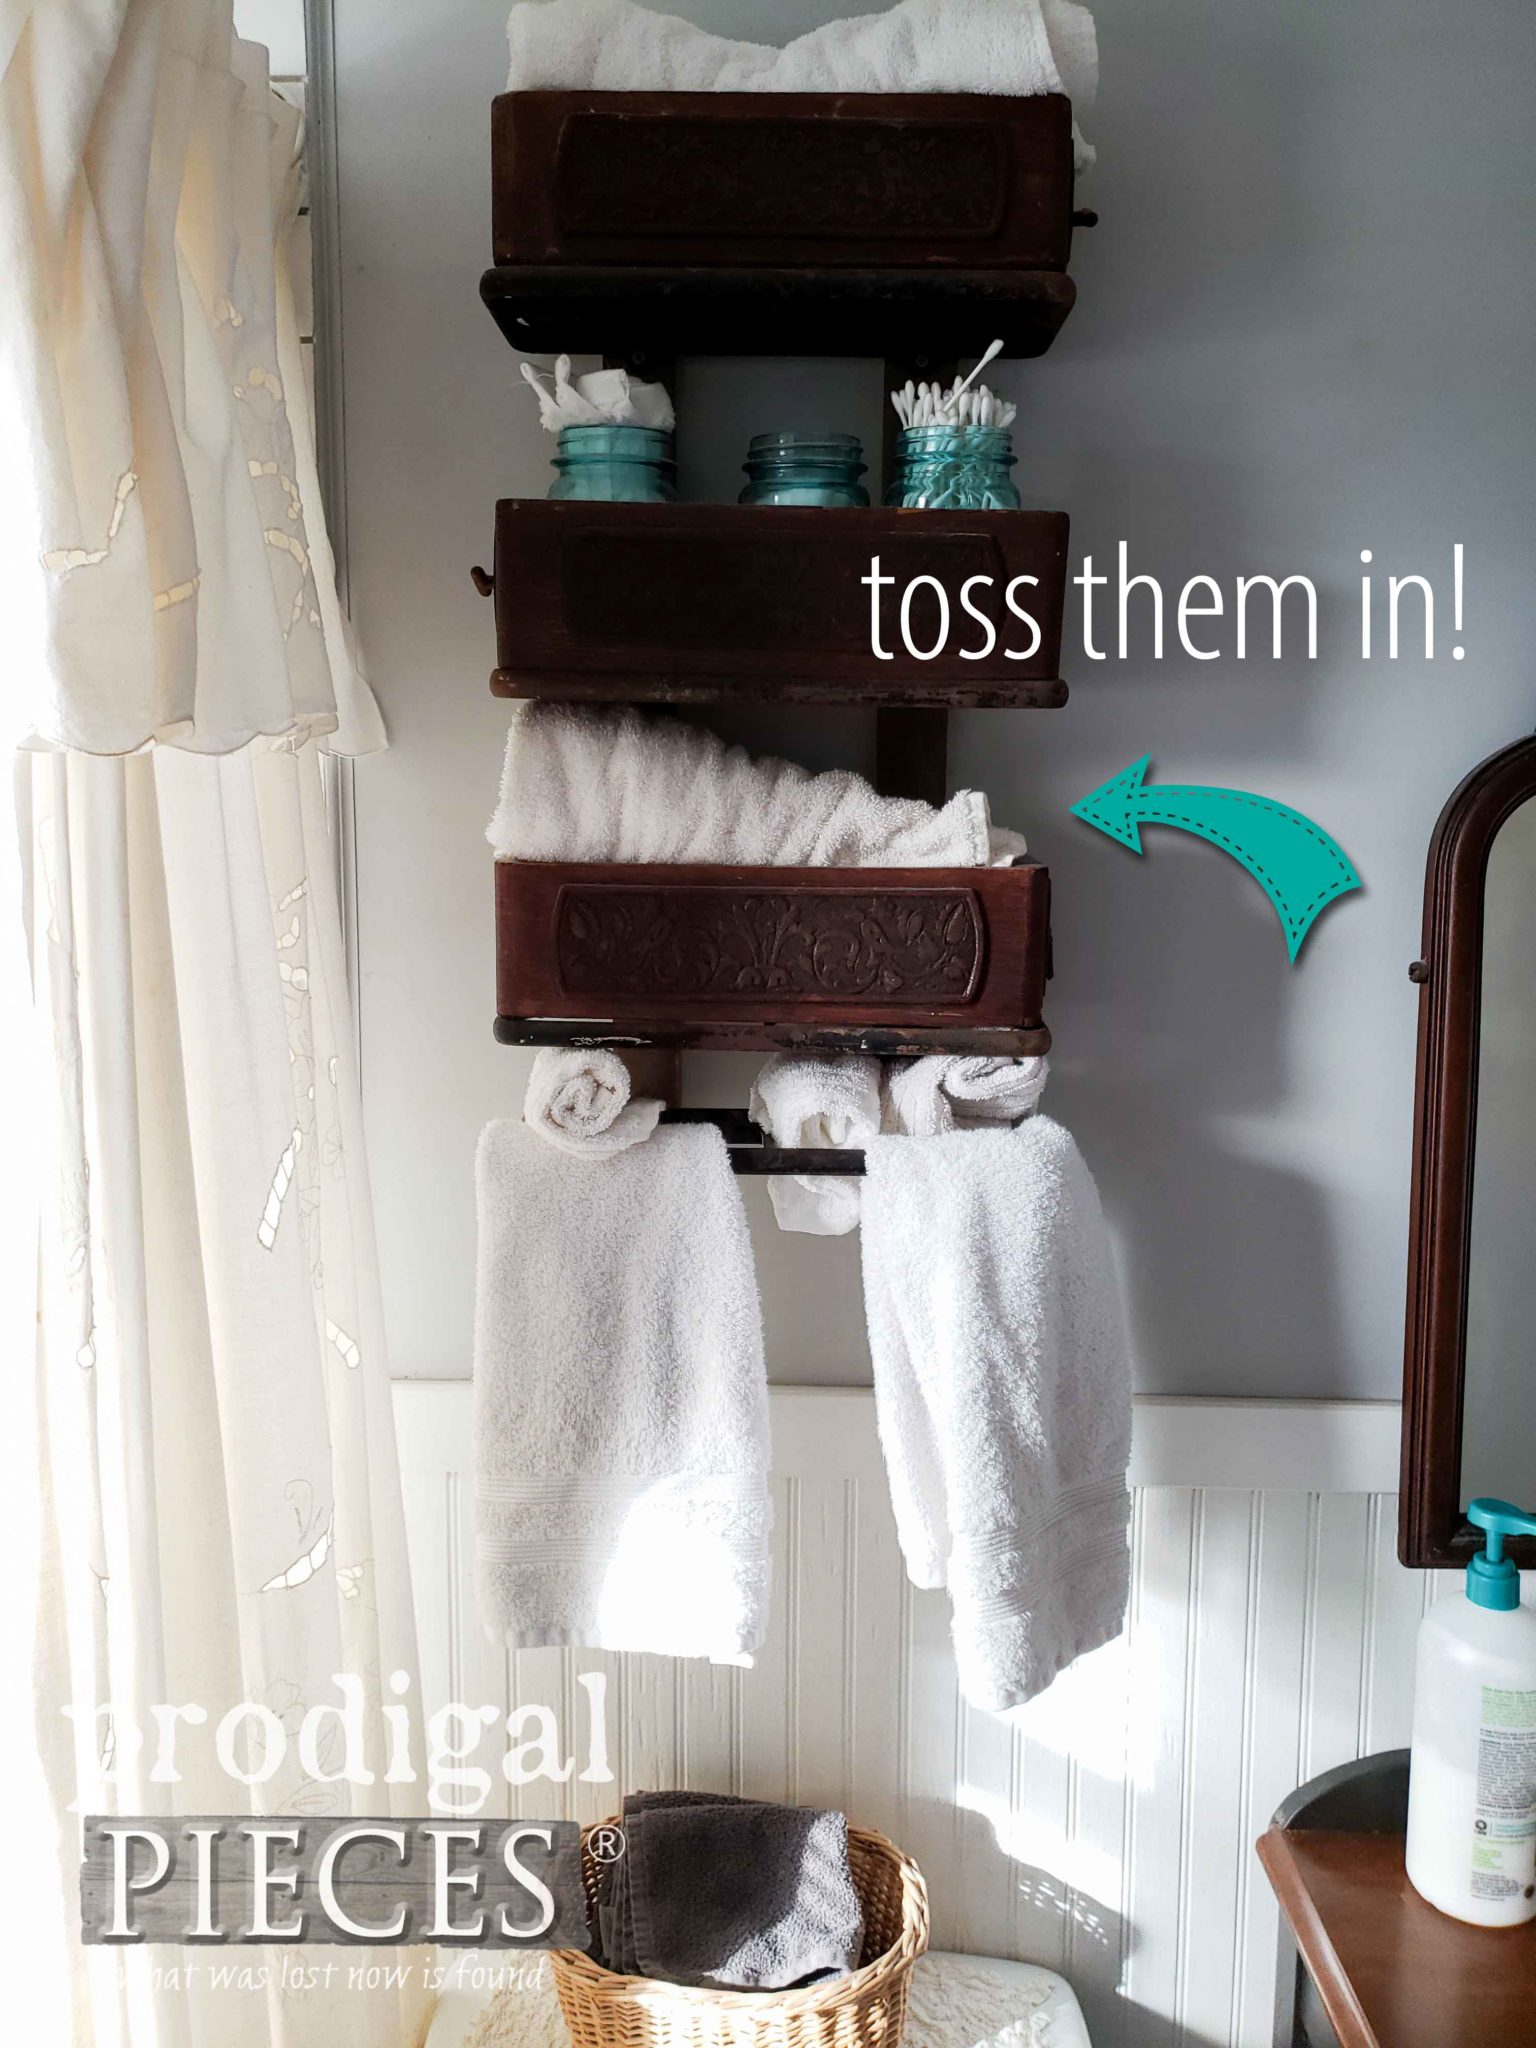 Last-Minute Cleaning Tip #2: Toss the linens in for a quick wash. | prodigalpieces.com